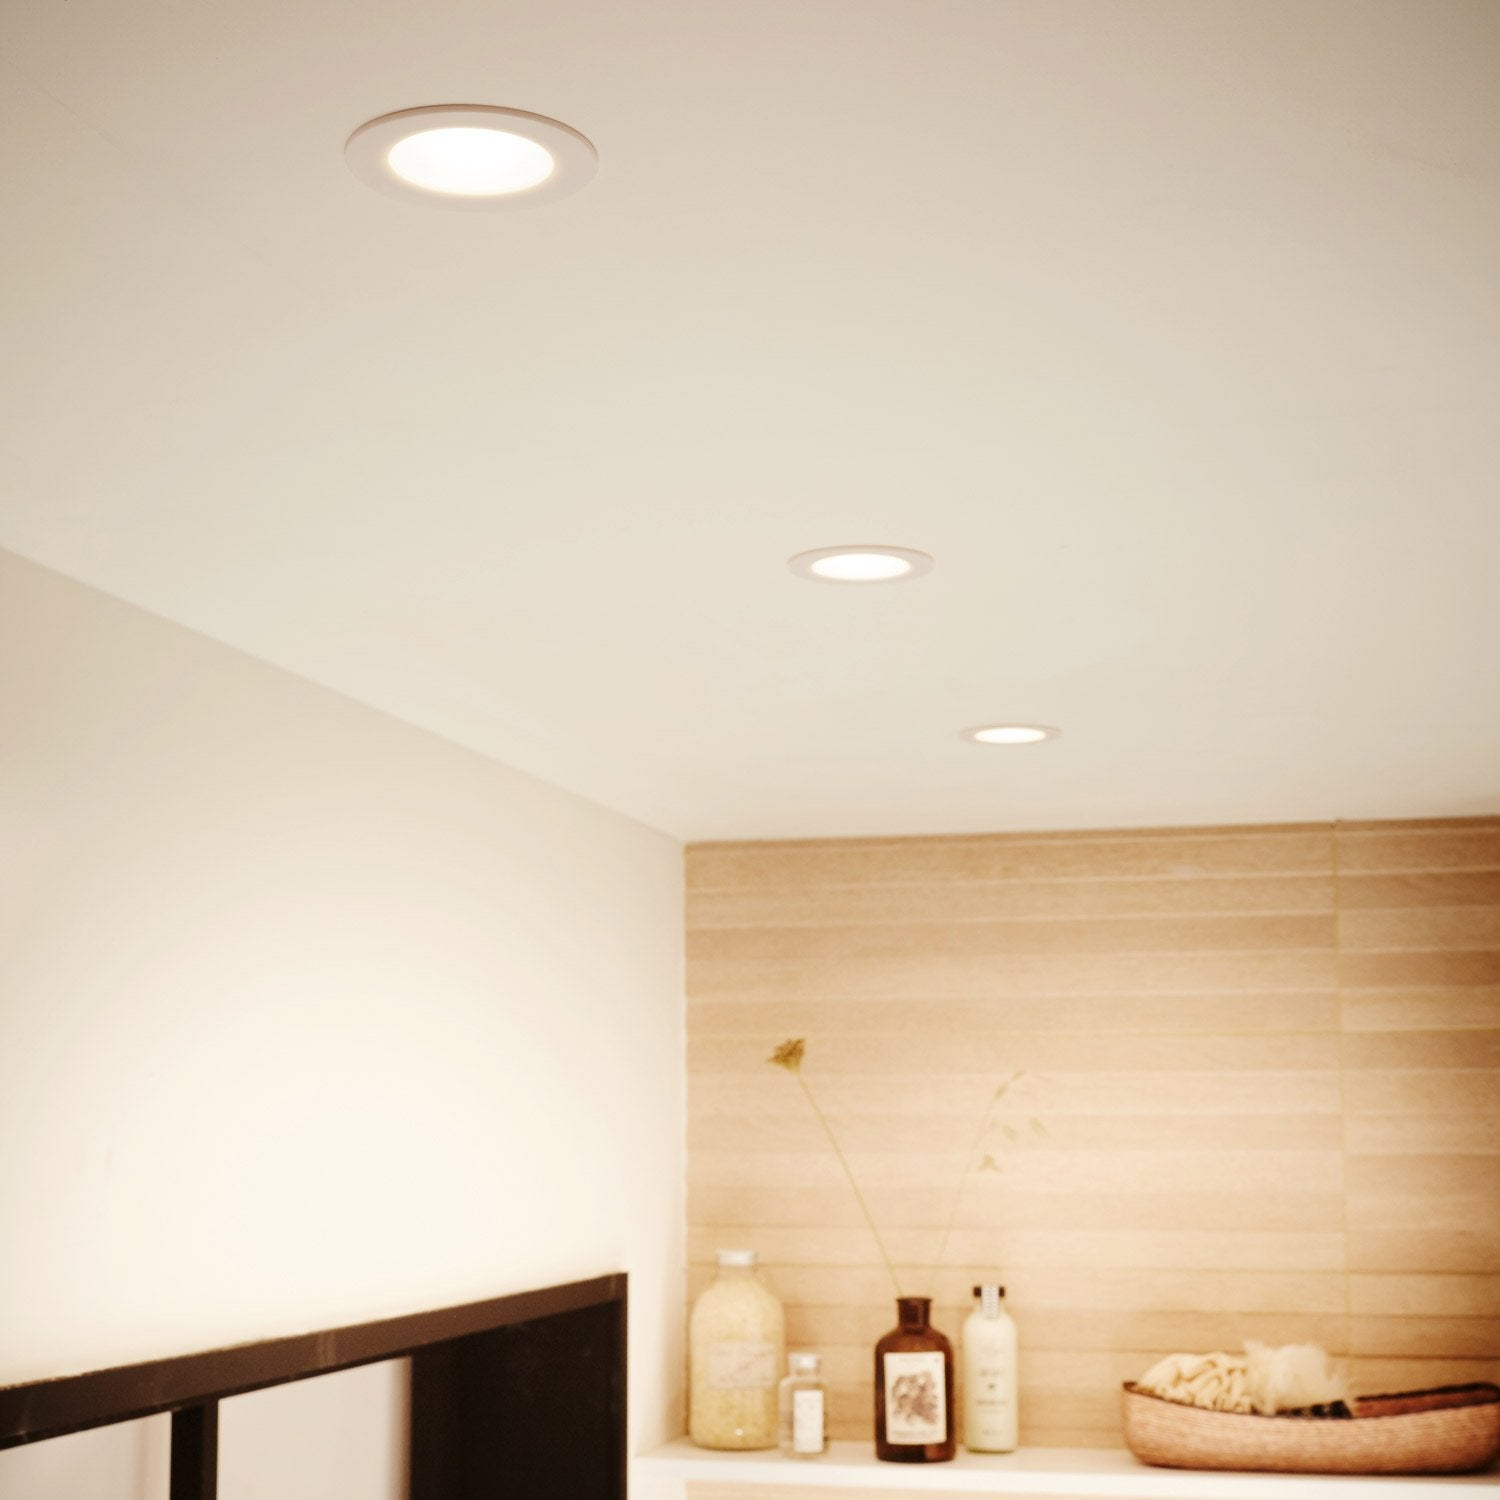 Spot plafond chambre 5w 7w led spot encastrable downlight for Eclairage plafond salle de bain